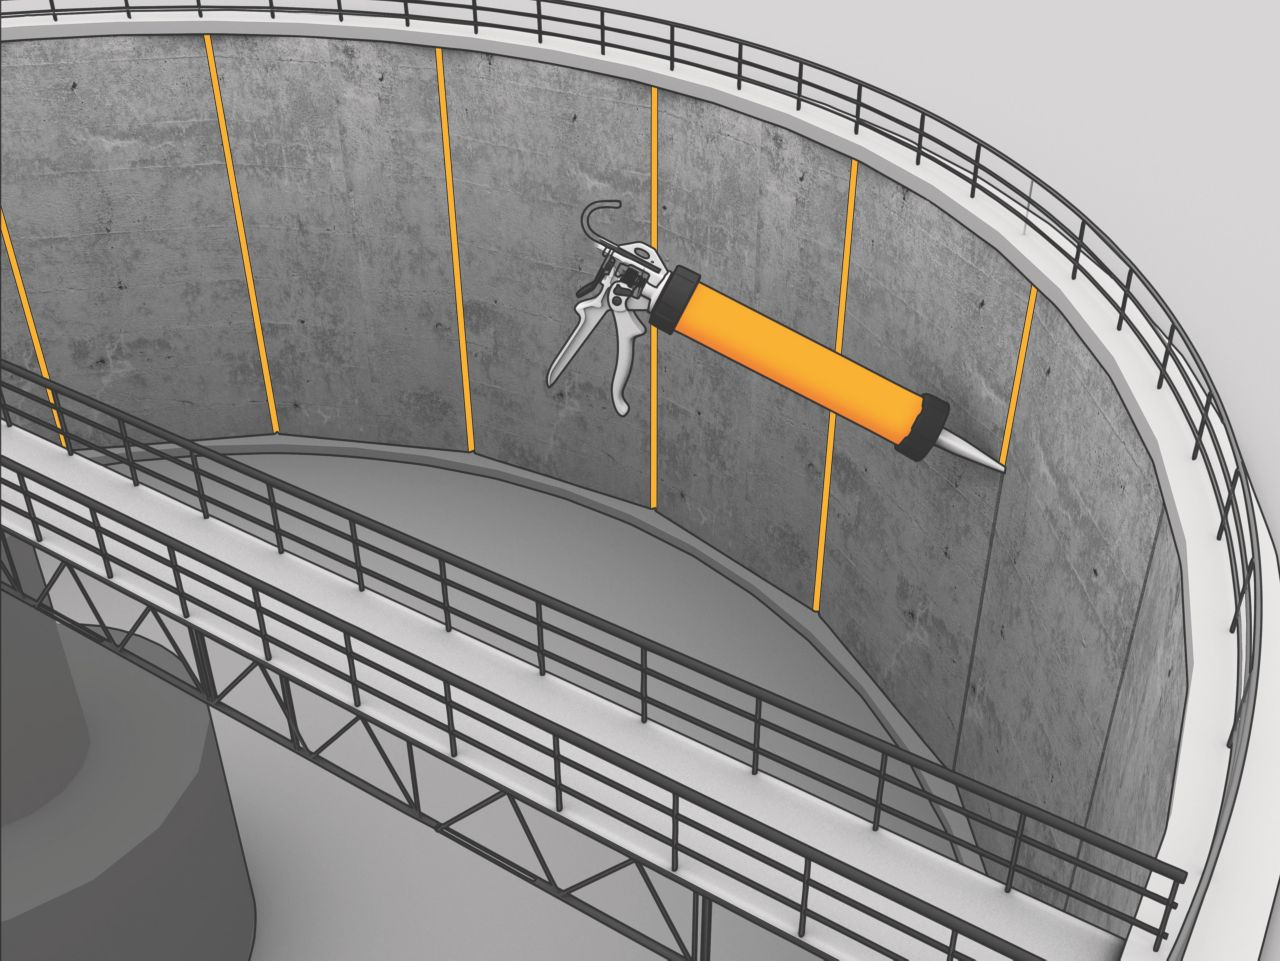 Sealing connection joints in waste water treatment plant with Sikaflex elastic joint sealant